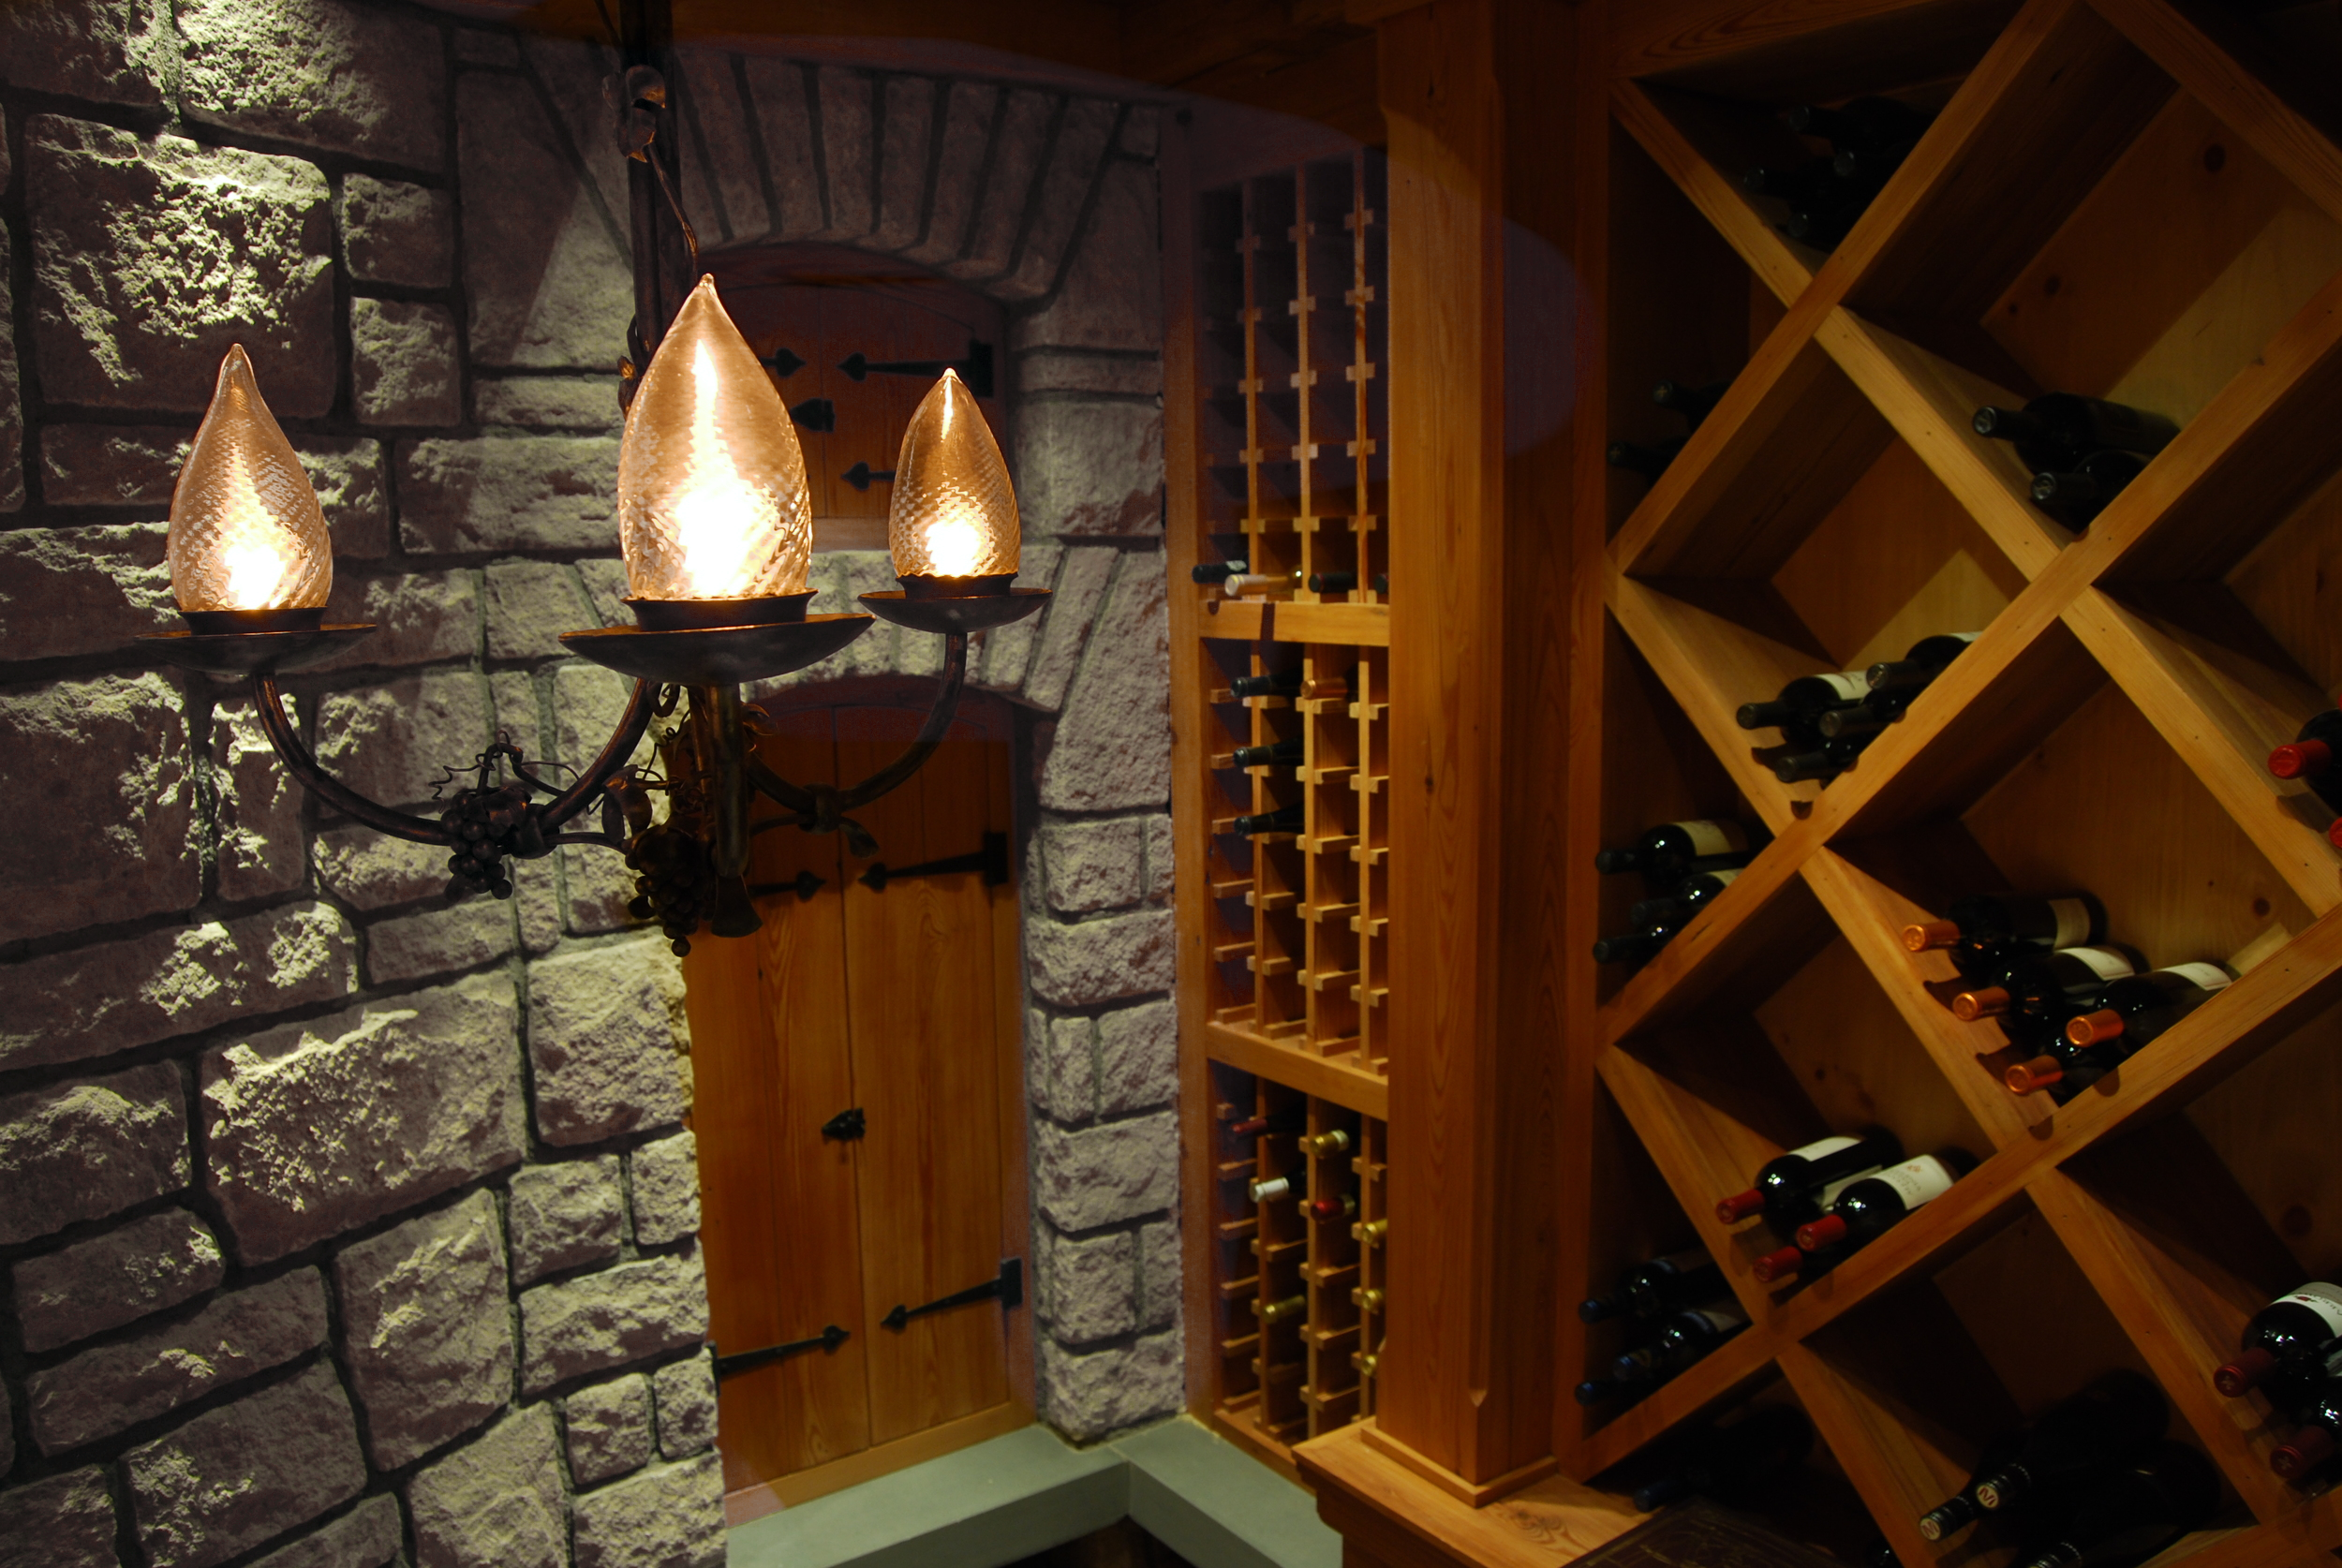 Hassford Gulch Cellar:  Hand crafted pendant with realistic fiber optic flickering gas flames.